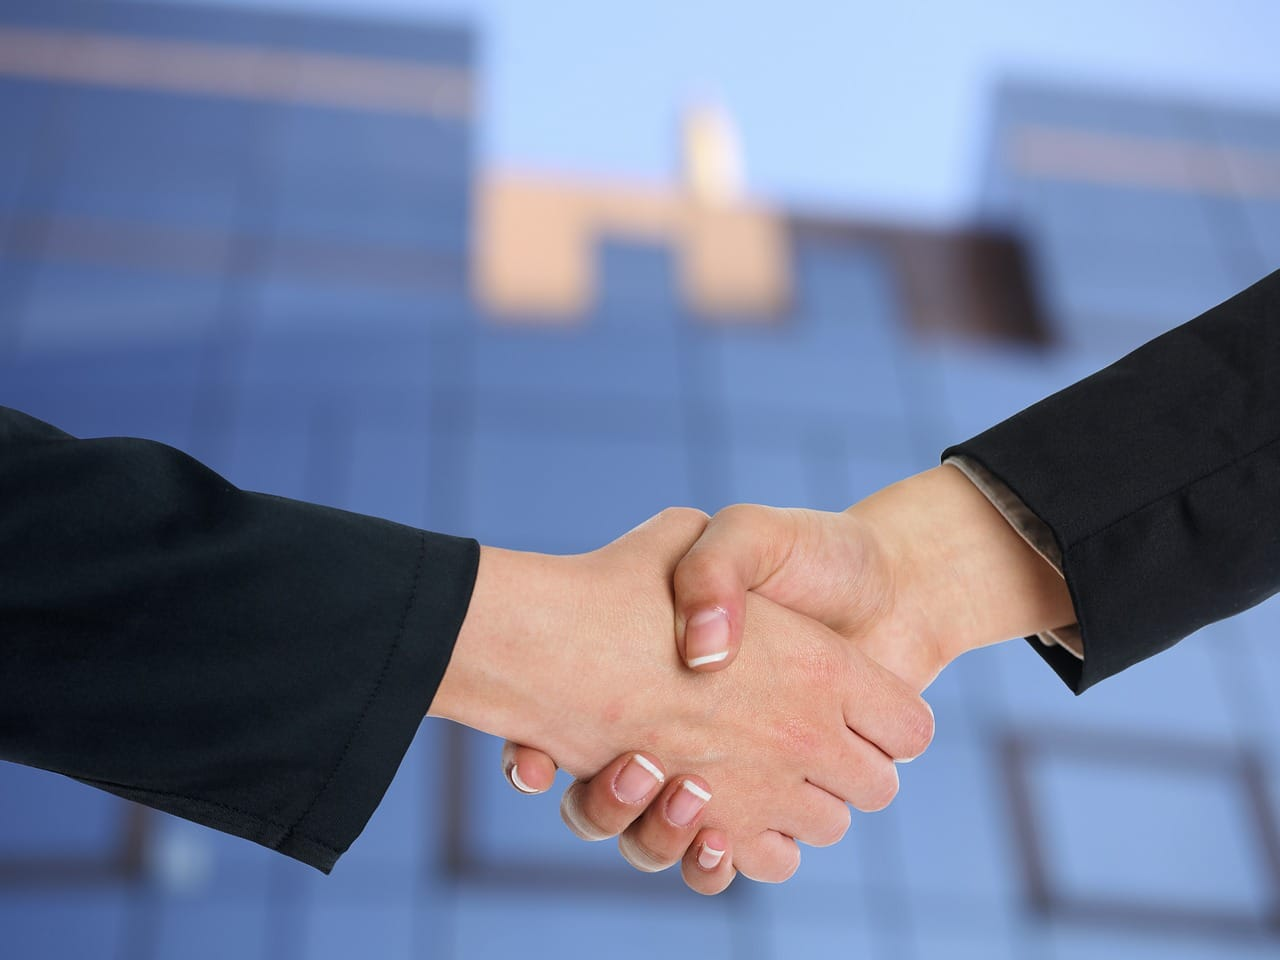 two persons on handshakes